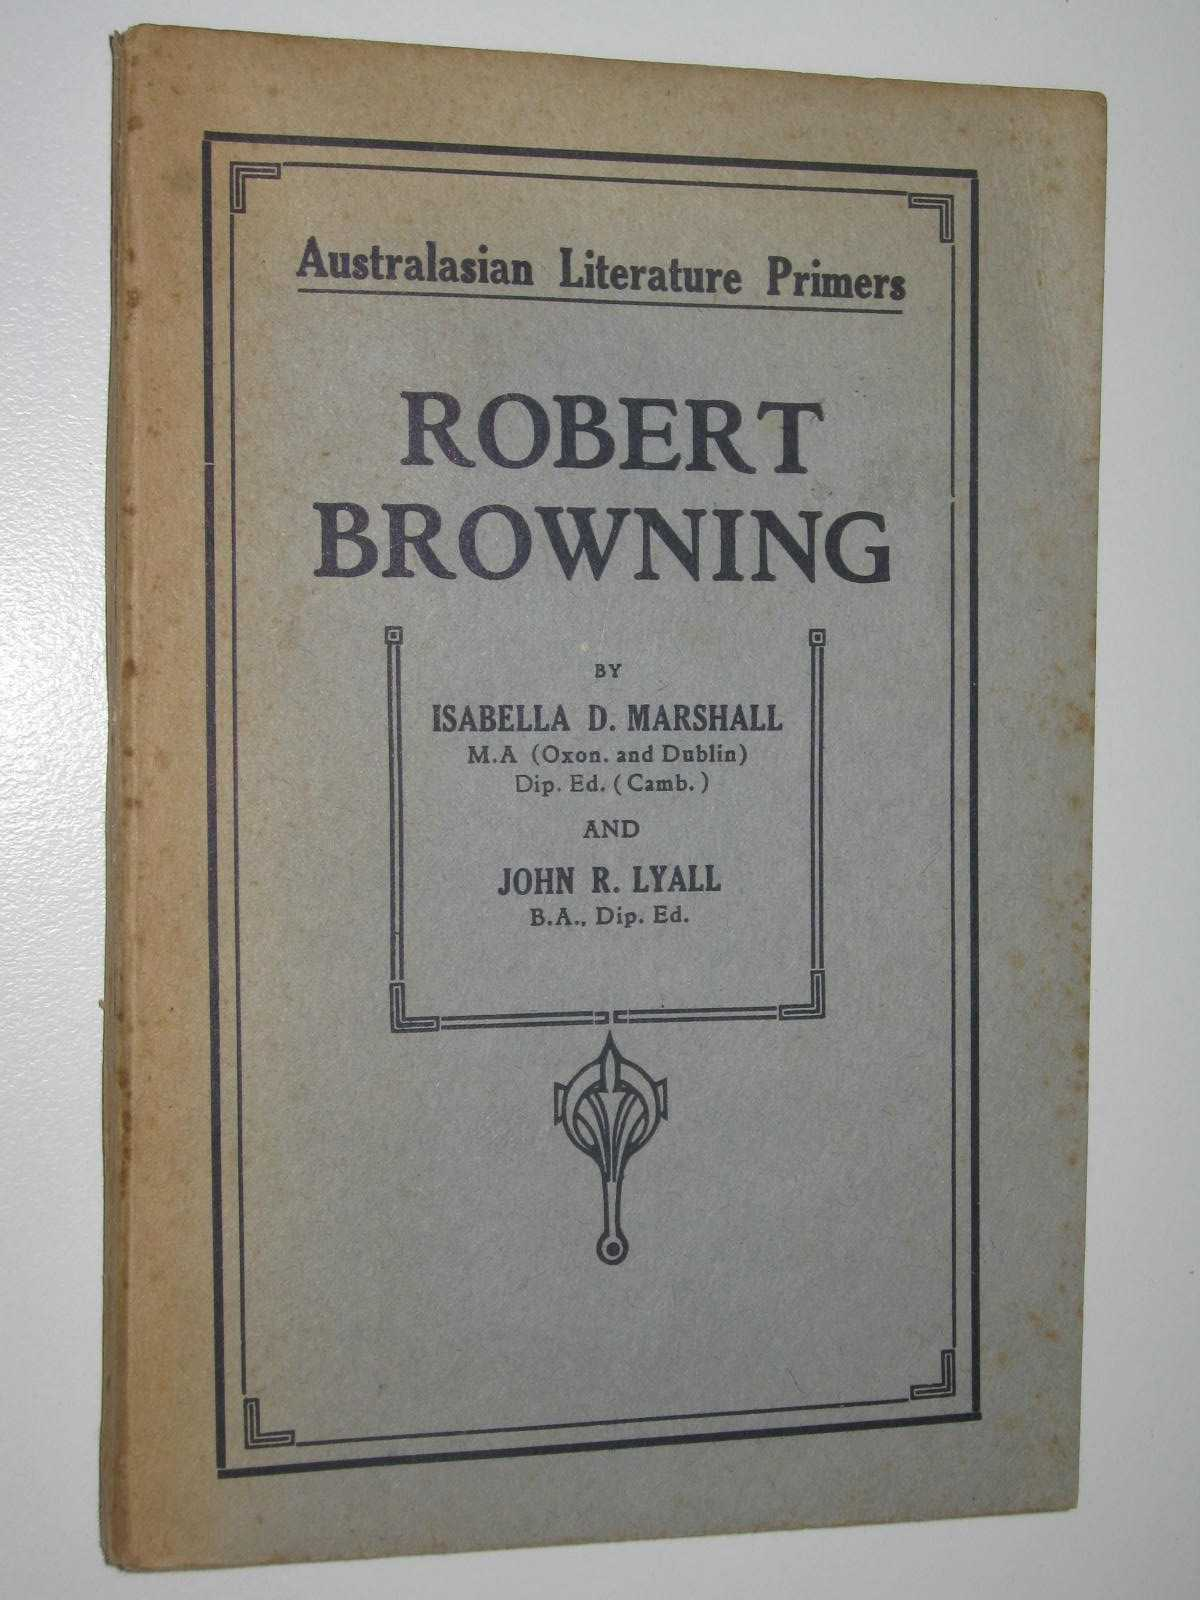 Image for Robert Browning - Australasian Literature Primers Series